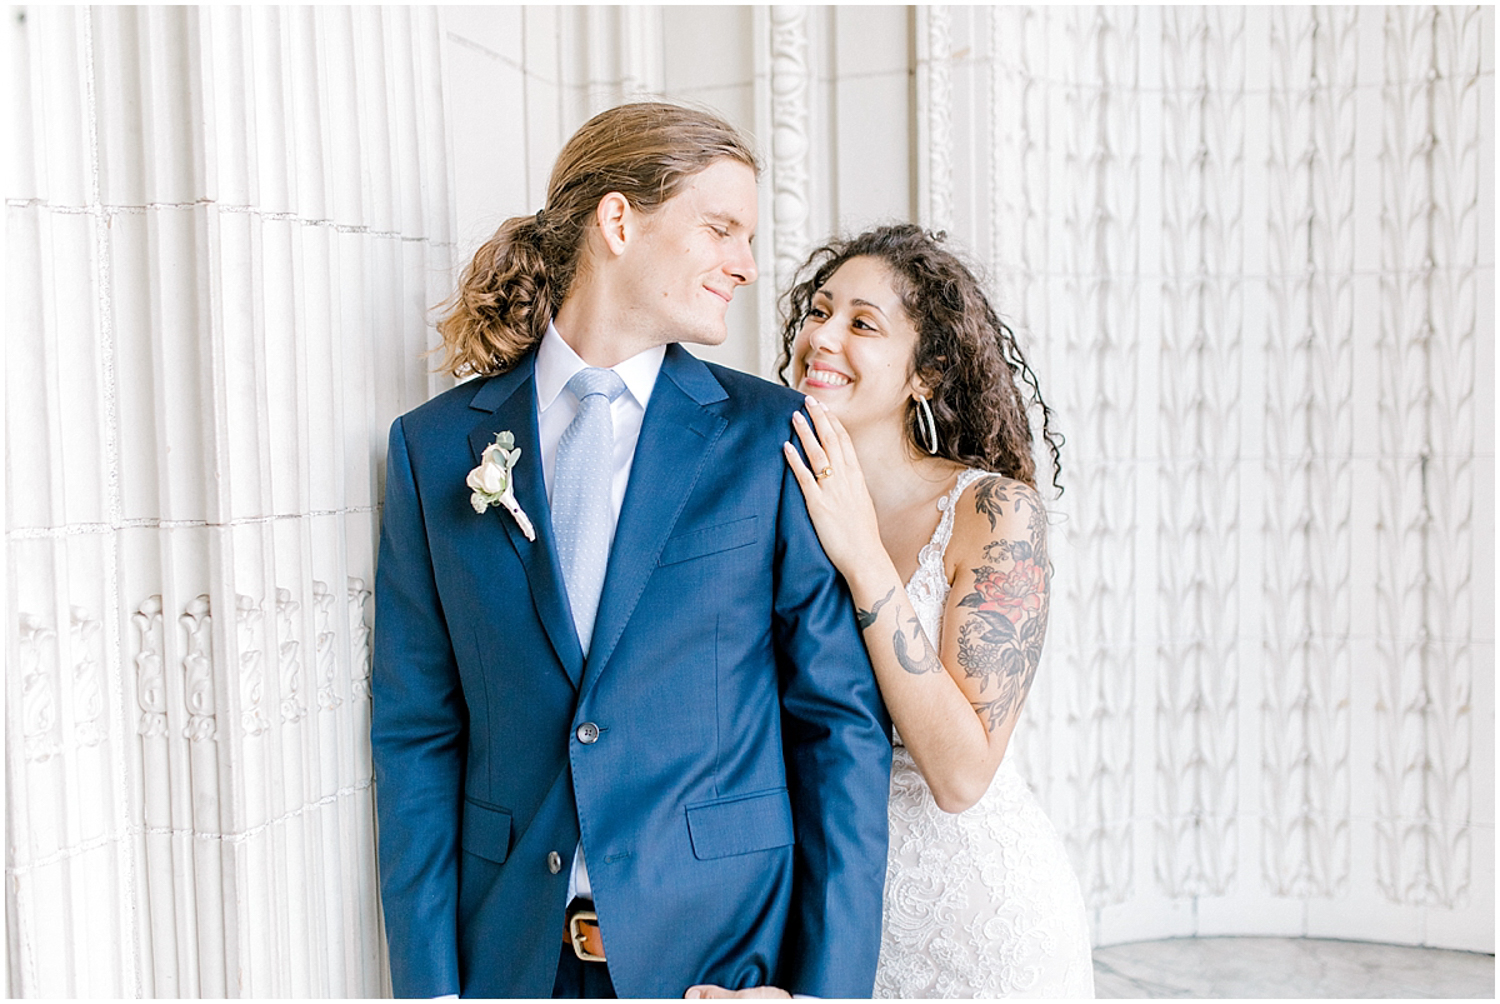 Seattle City Hall Courthouse Wedding Elopement | Seattle Wedding Photographer | Emma Rose Company | Downtown Seattle Wedding Inspiration | Pacific Northwest Elopement | Courthouse Elopement in the City-72.jpg